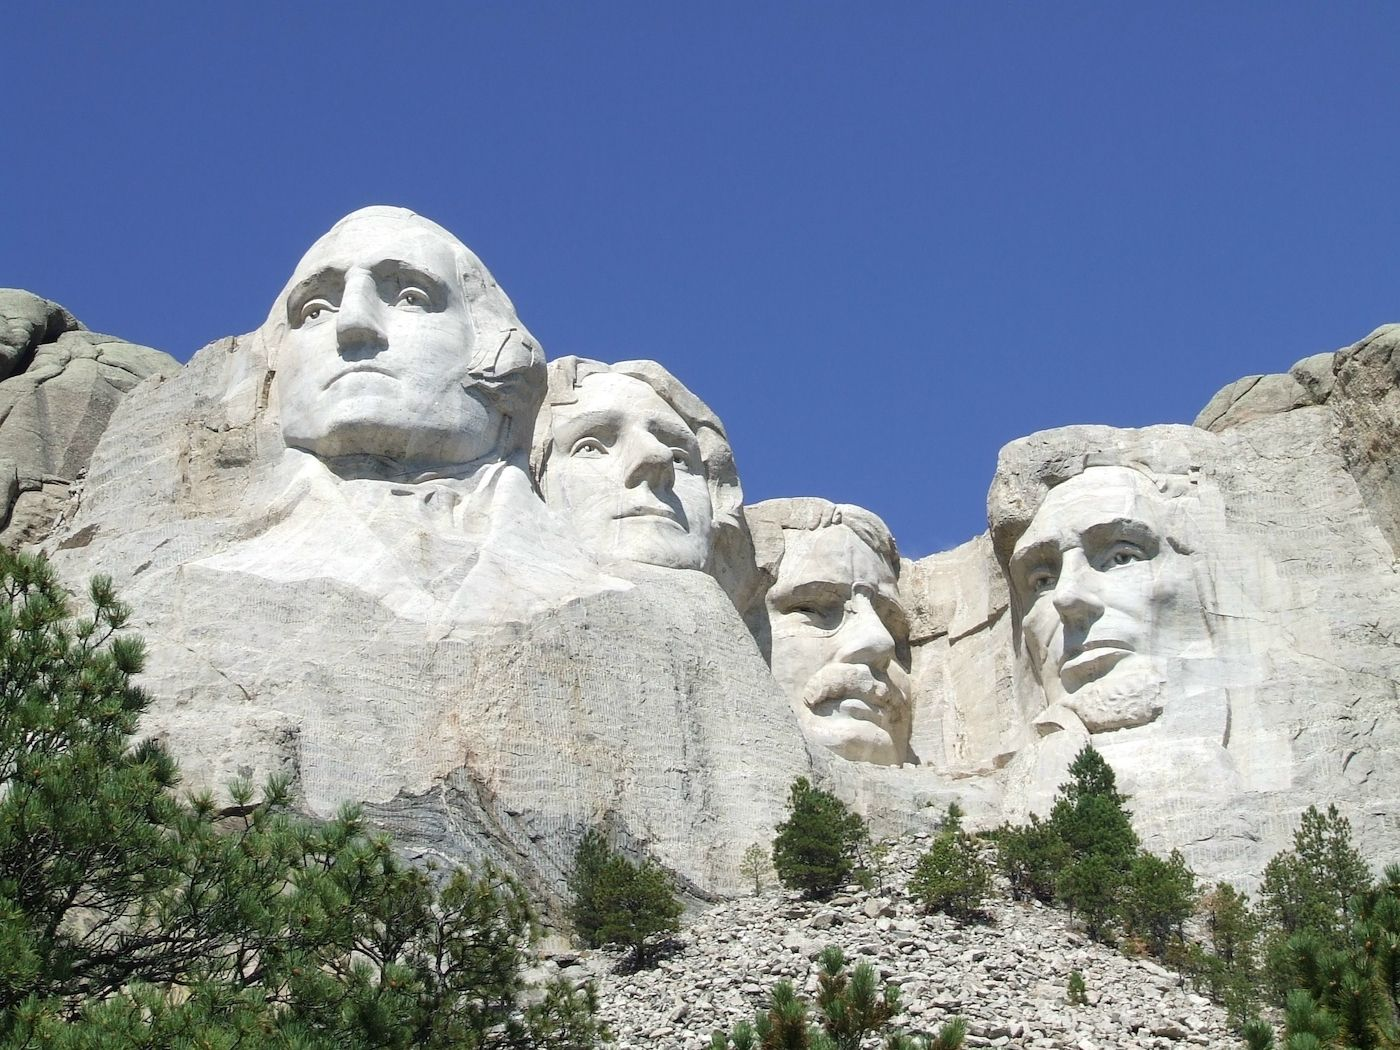 Tribal leaders and organisations call for the removal of Mount Rushmore monument